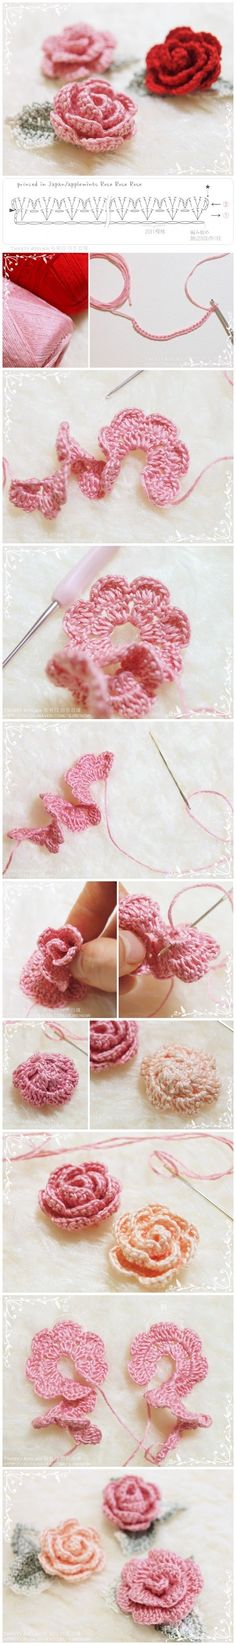 How to make hand-knitted rose - Folkvox - Imágenes que hablan de mí -